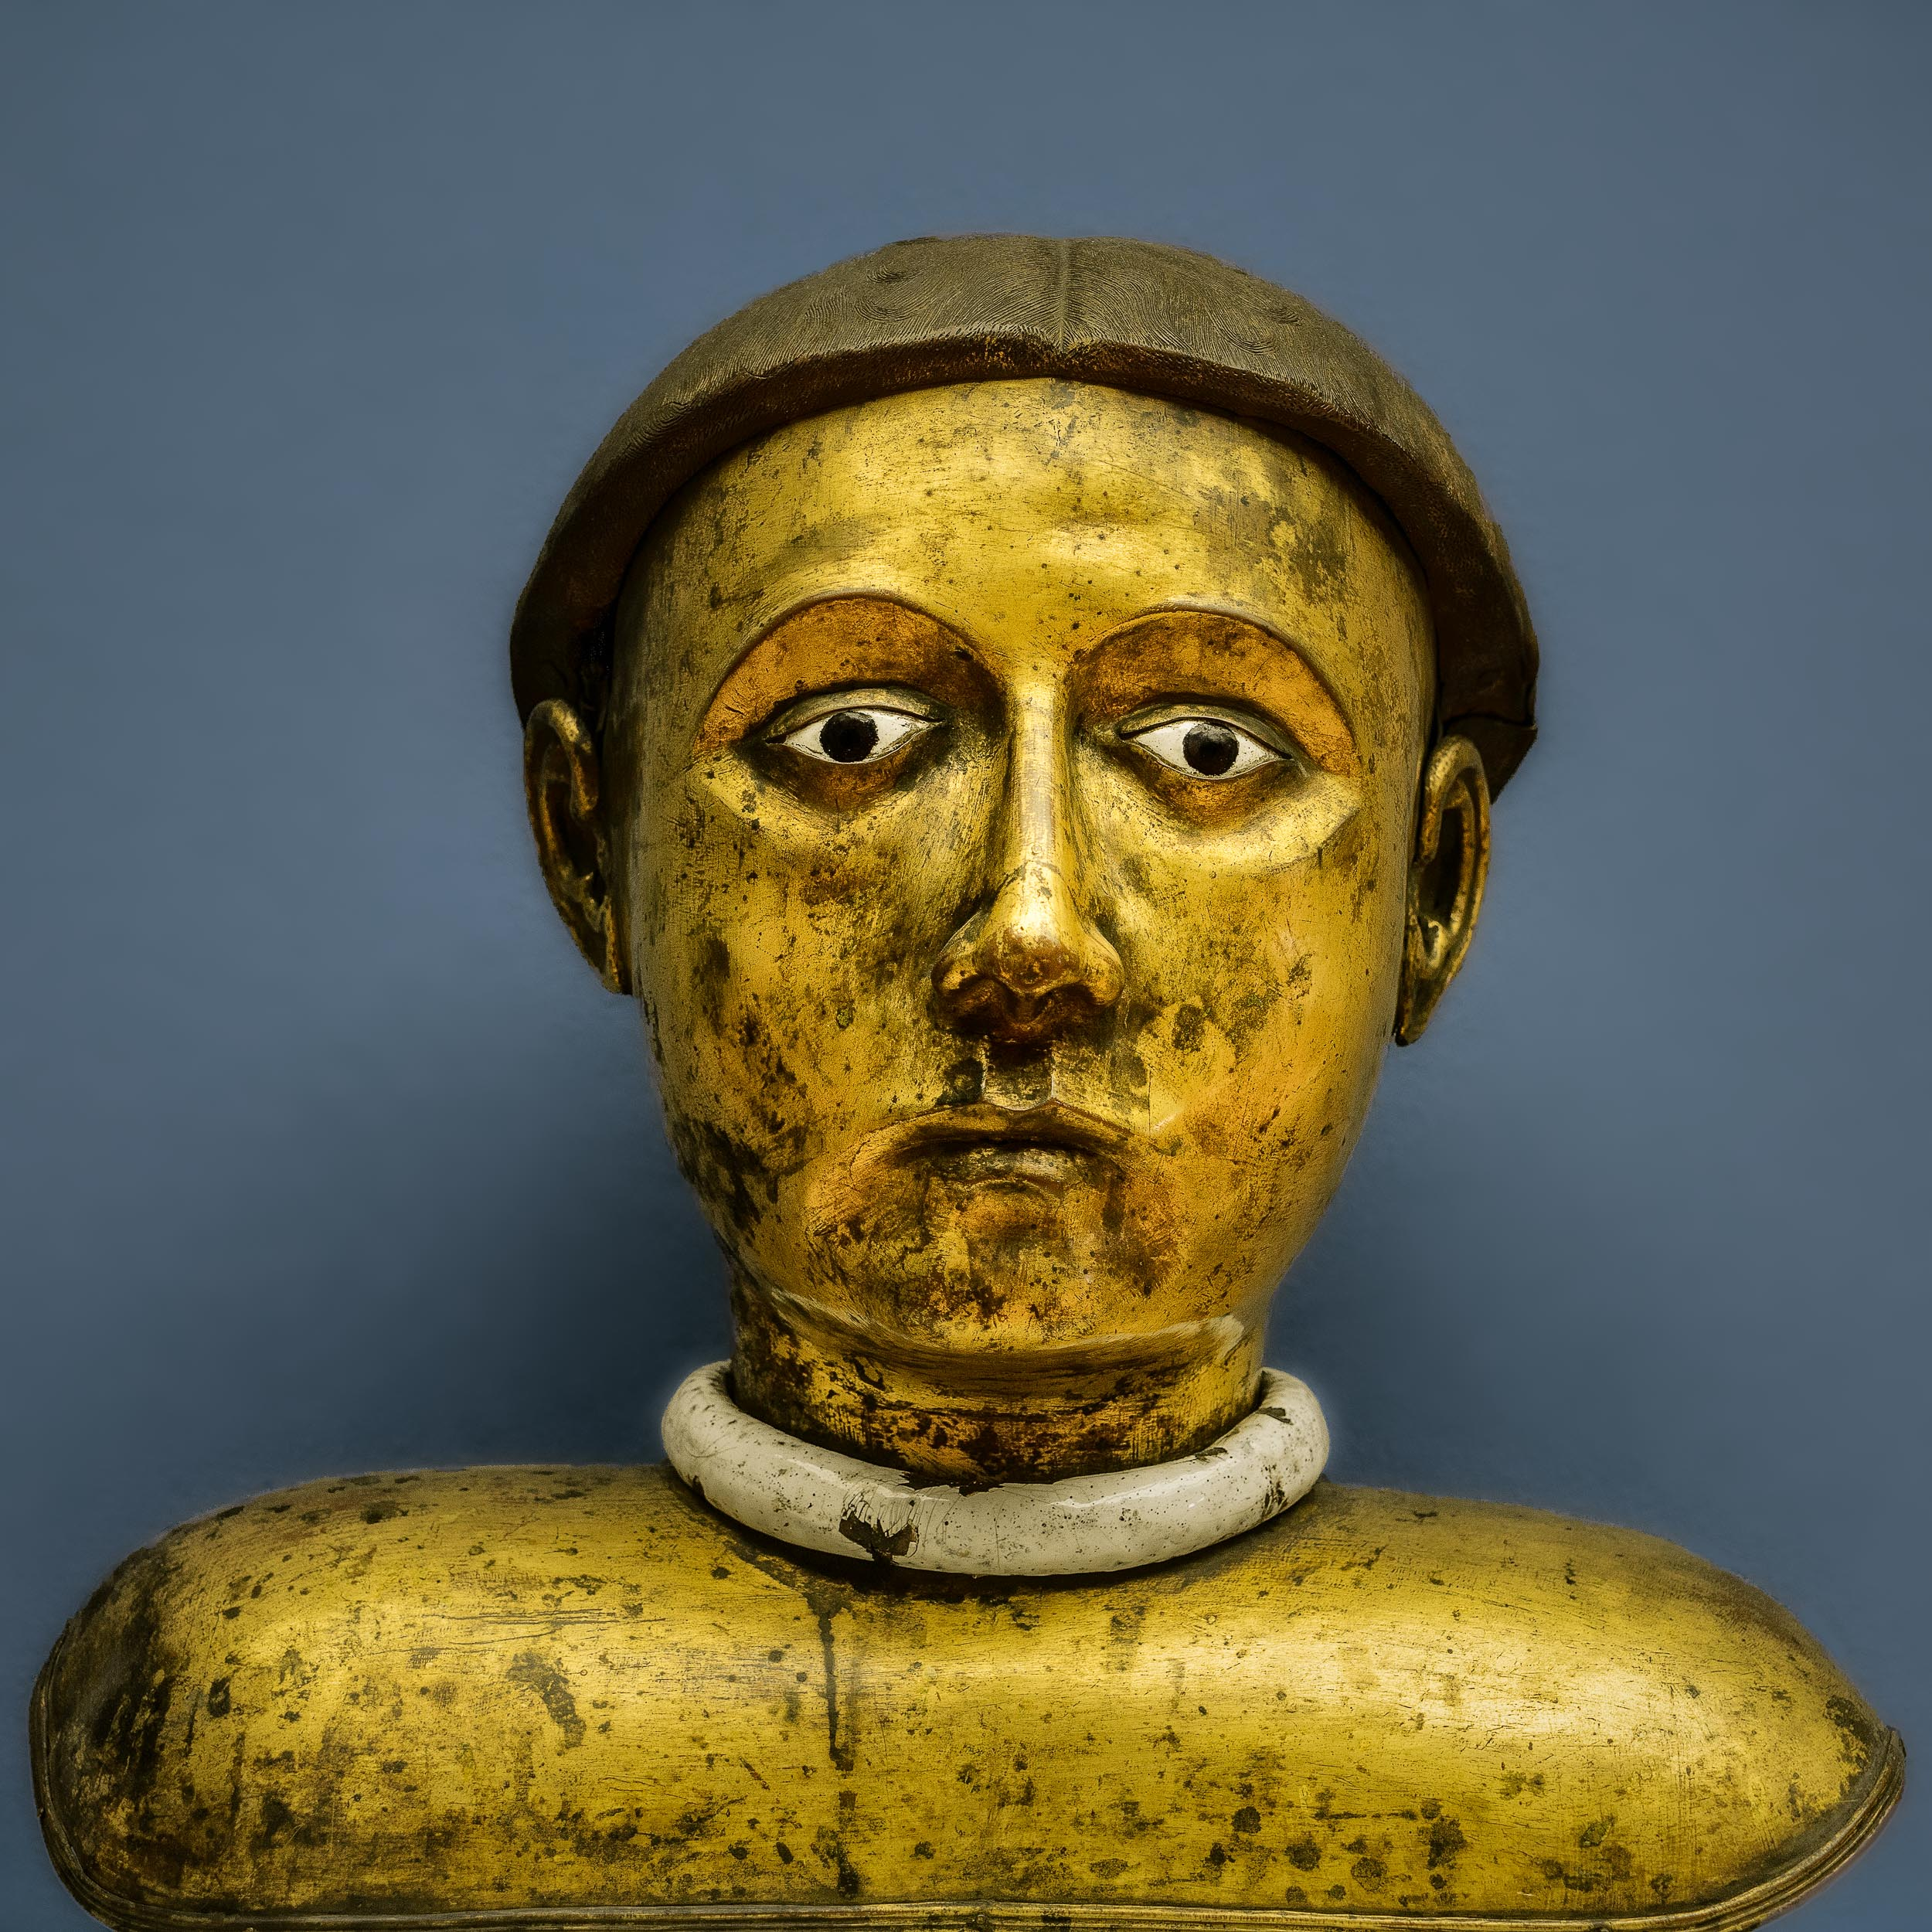 A beauitful    gold colored bust    in the    Bode Museum    in    Berlin, Germany   .